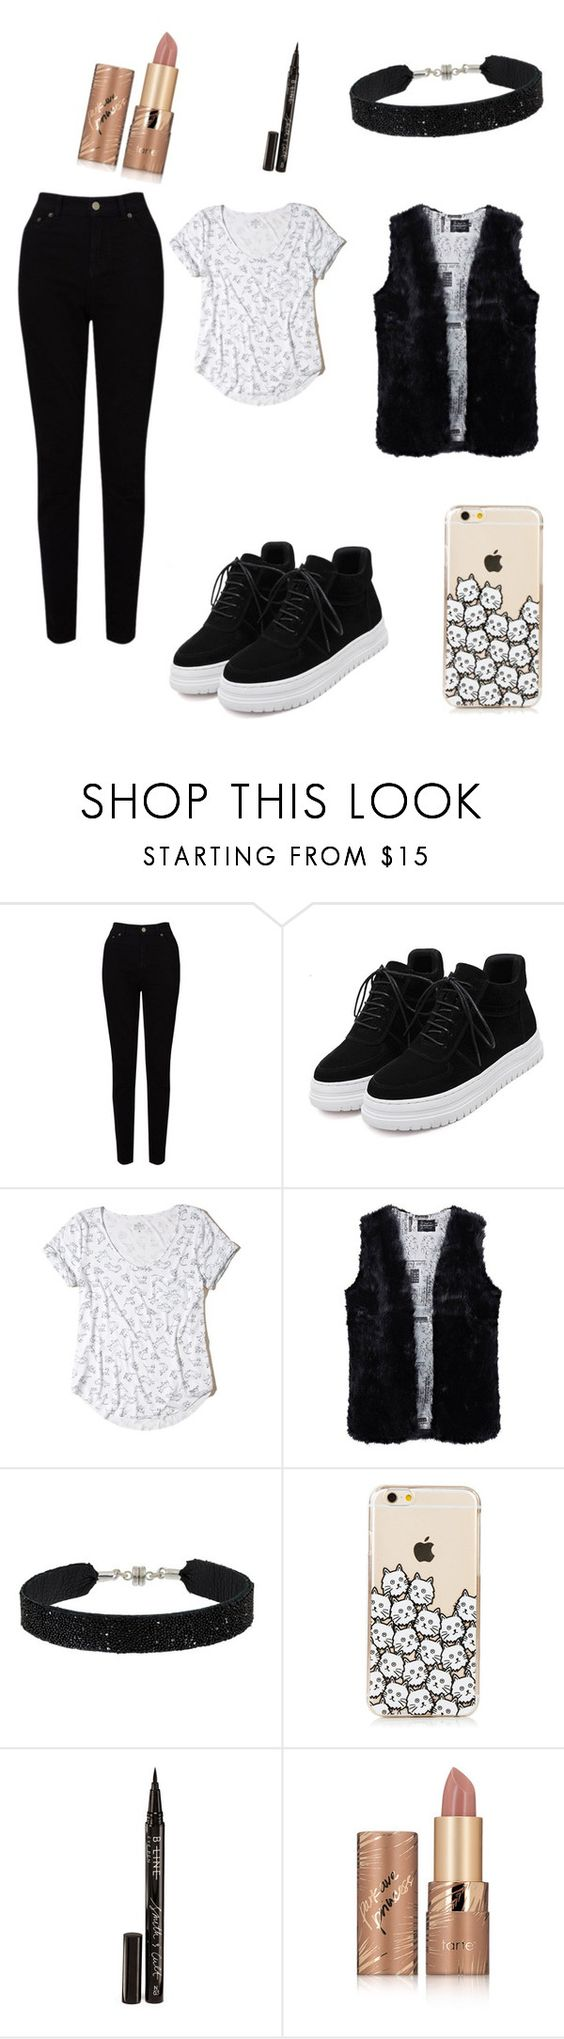 """на праздник"" by alinageroeva ❤ liked on Polyvore featuring EAST, Hollister Co., She.Rise, Smith & Cult and tarte"